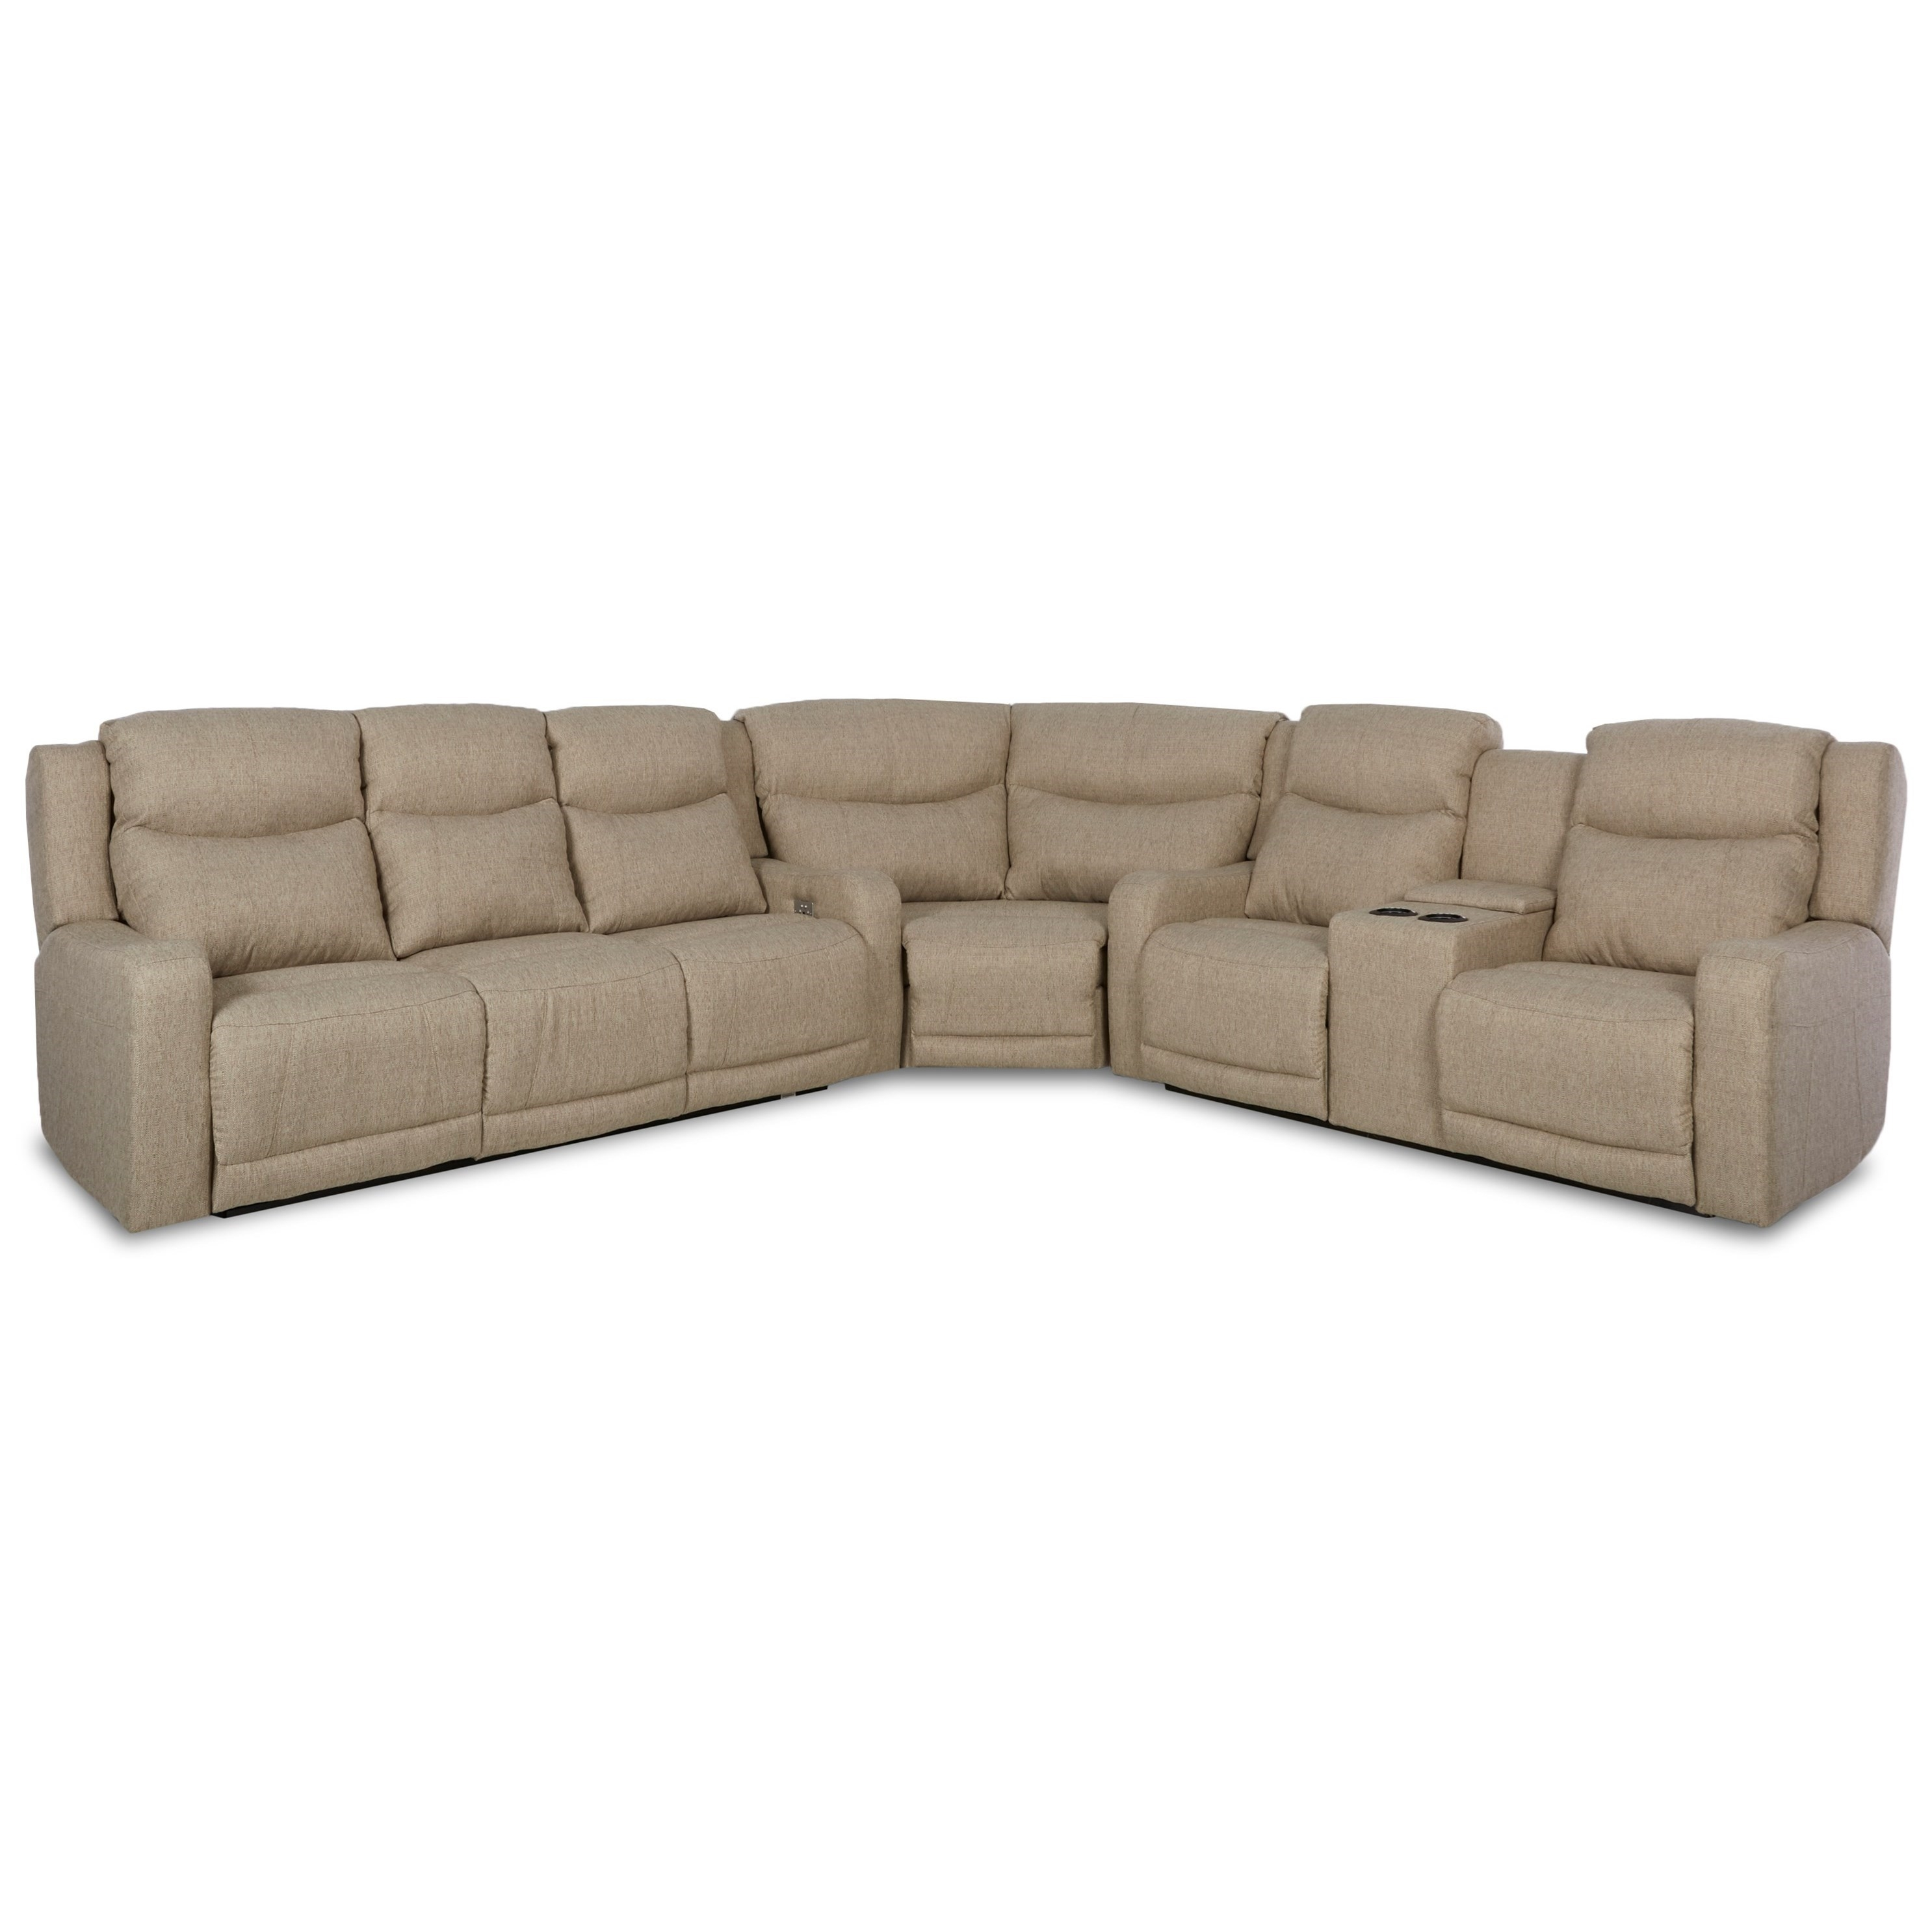 Elegant Electric Reclining Sectional Sofa – Sofas Within Clyde Grey Leather 3 Piece Power Reclining Sectionals With Pwr Hdrst & Usb (View 19 of 25)